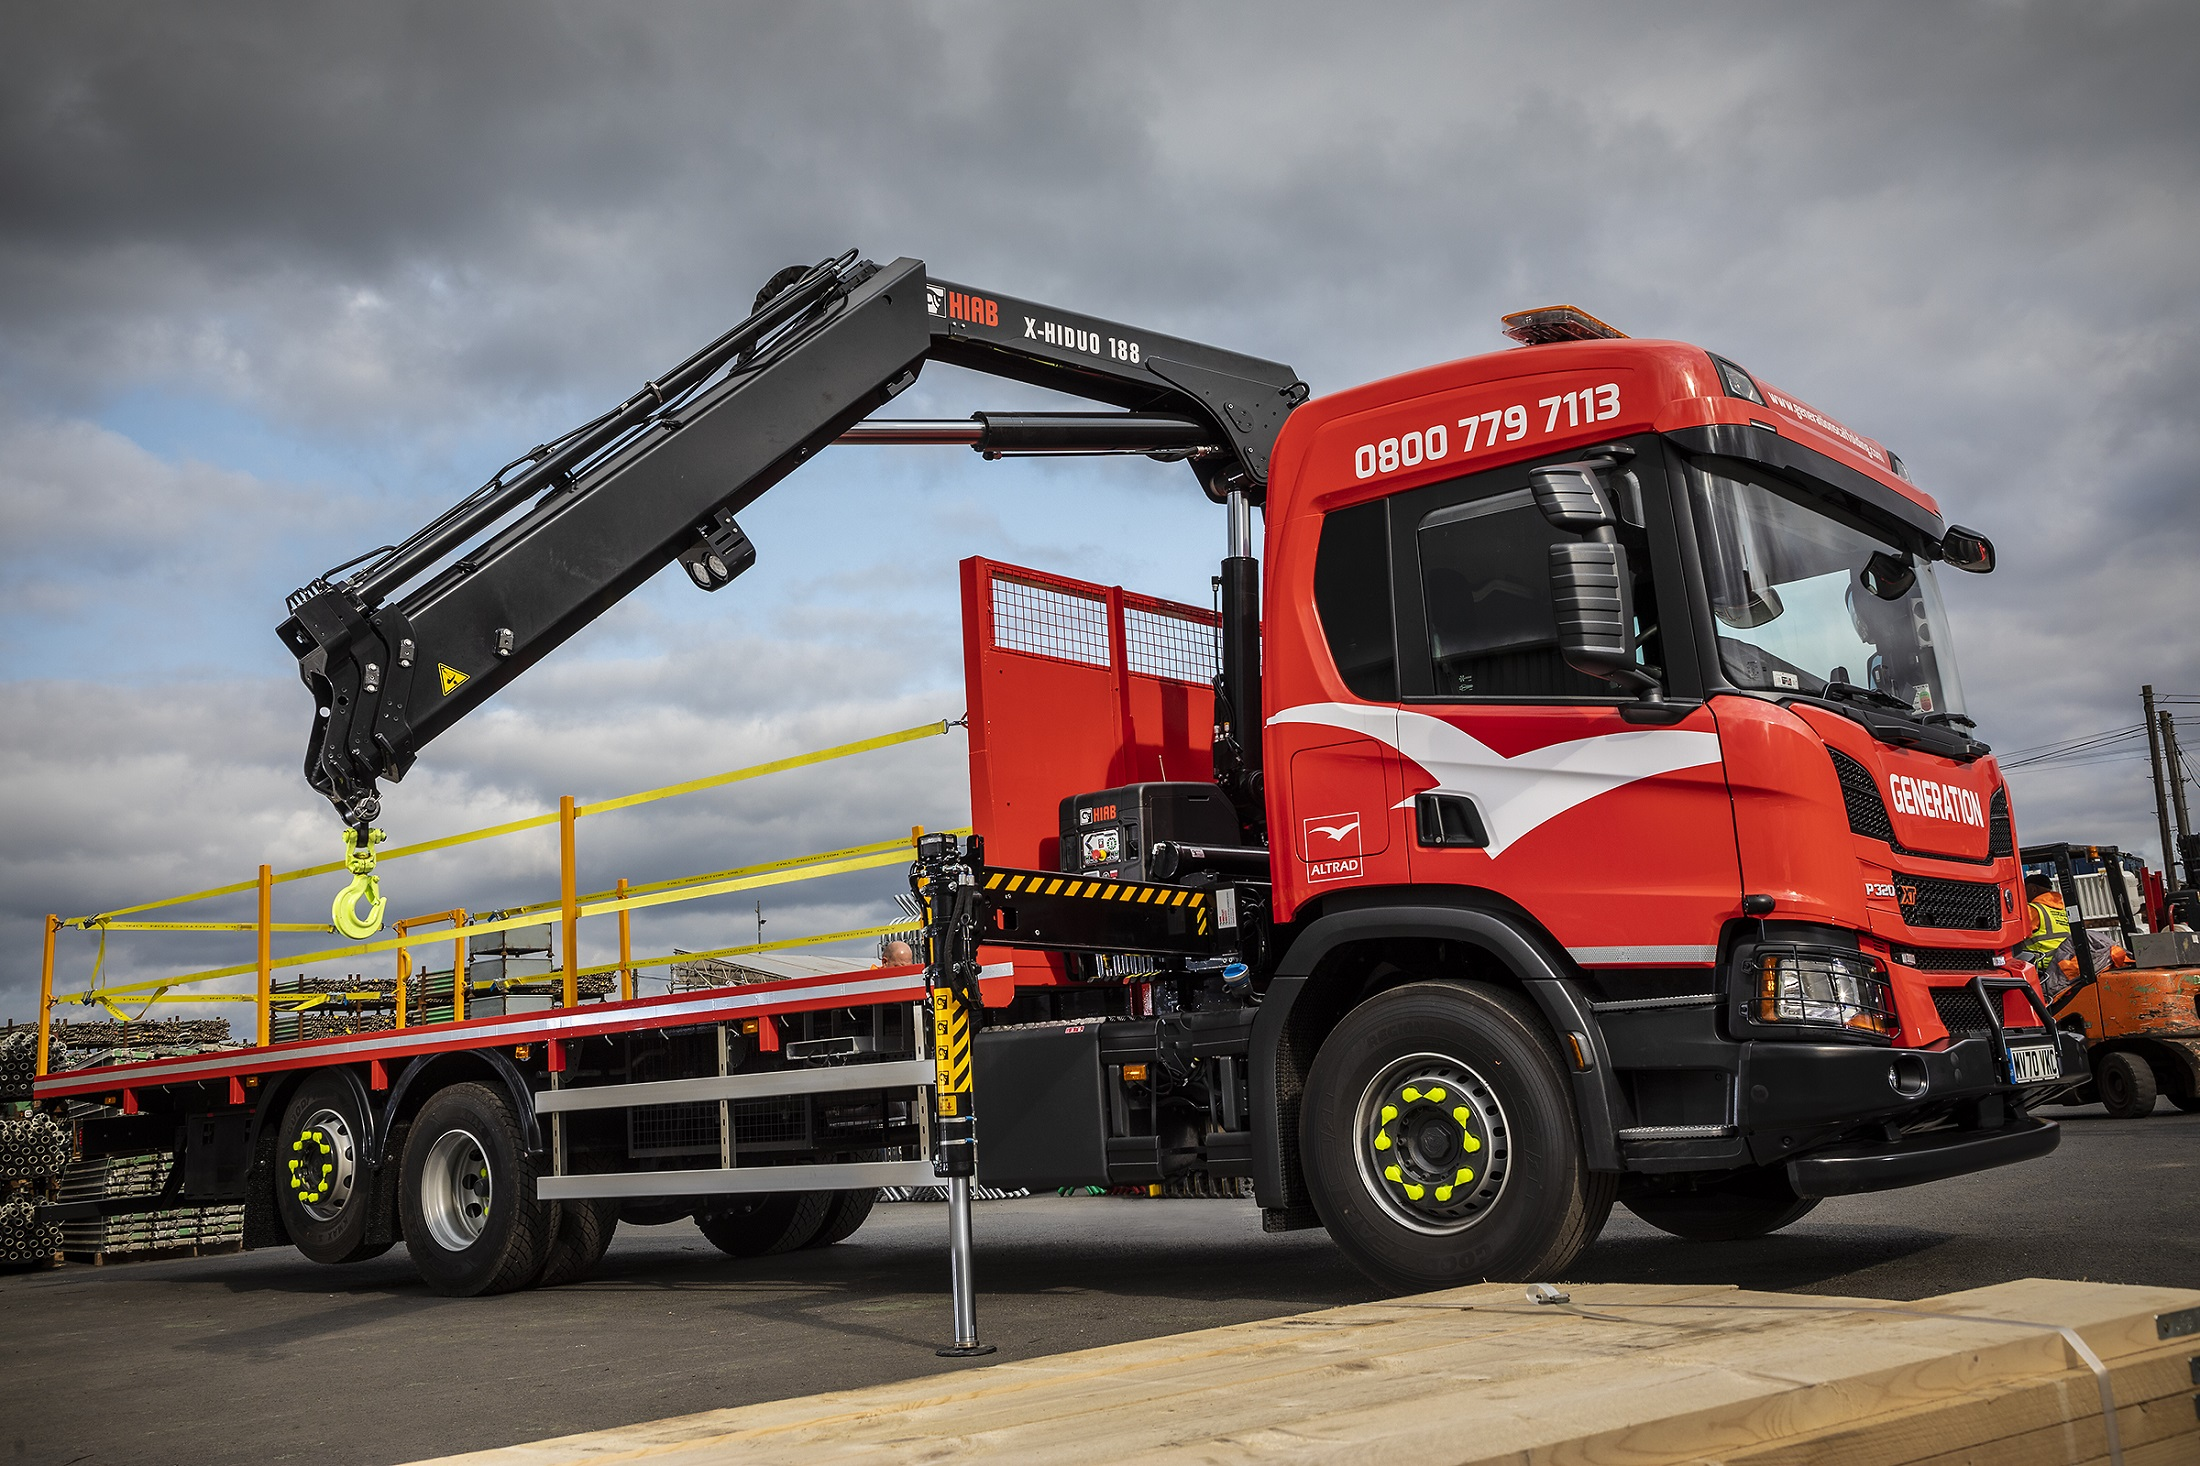 Scaffolding Giant Invests in New Generation Cranes